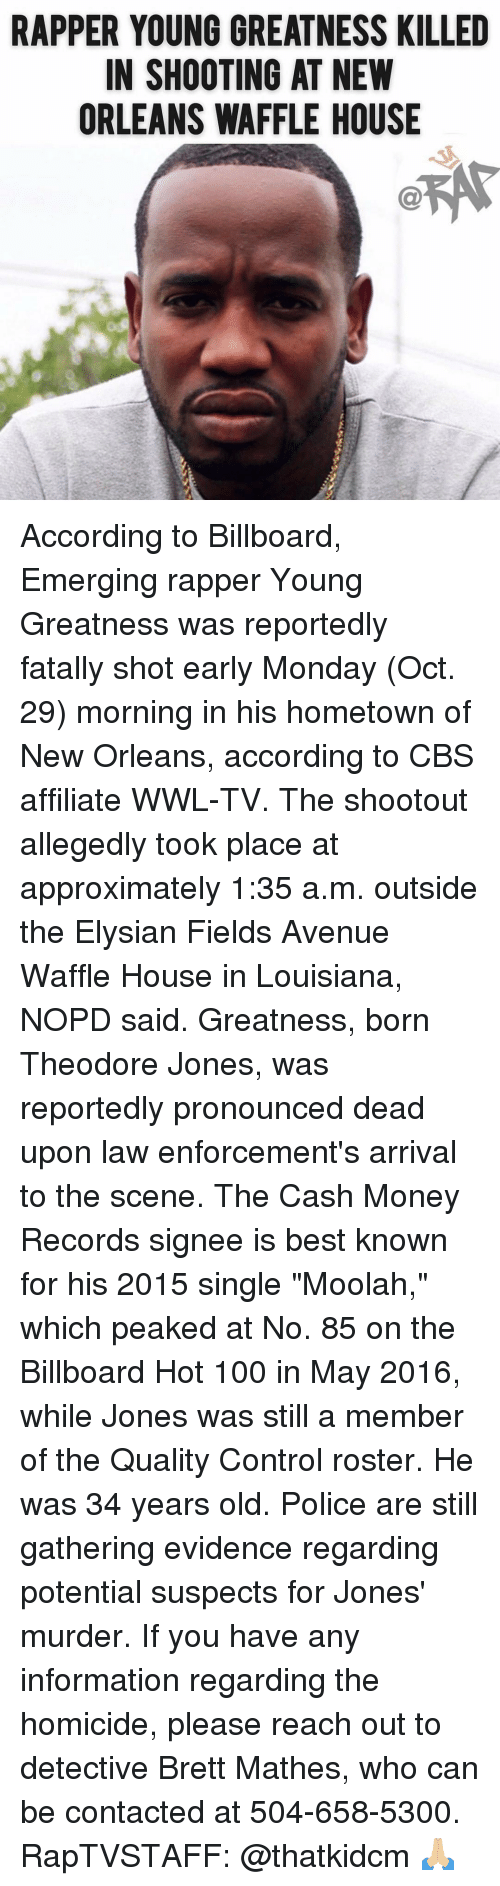 "Avenue: RAPPER YOUNG GREATNESS KILLED  IN SHOOTING AT NEW  ORLEANS WAFFLE HOUSE According to Billboard, Emerging rapper Young Greatness was reportedly fatally shot early Monday (Oct. 29) morning in his hometown of New Orleans, according to CBS affiliate WWL-TV. The shootout allegedly took place at approximately 1:35 a.m. outside the Elysian Fields Avenue Waffle House in Louisiana, NOPD said. Greatness, born Theodore Jones, was reportedly pronounced dead upon law enforcement's arrival to the scene. The Cash Money Records signee is best known for his 2015 single ""Moolah,"" which peaked at No. 85 on the Billboard Hot 100 in May 2016, while Jones was still a member of the Quality Control roster. He was 34 years old. Police are still gathering evidence regarding potential suspects for Jones' murder. If you have any information regarding the homicide, please reach out to detective Brett Mathes, who can be contacted at 504-658-5300. RapTVSTAFF: @thatkidcm 🙏🏼"